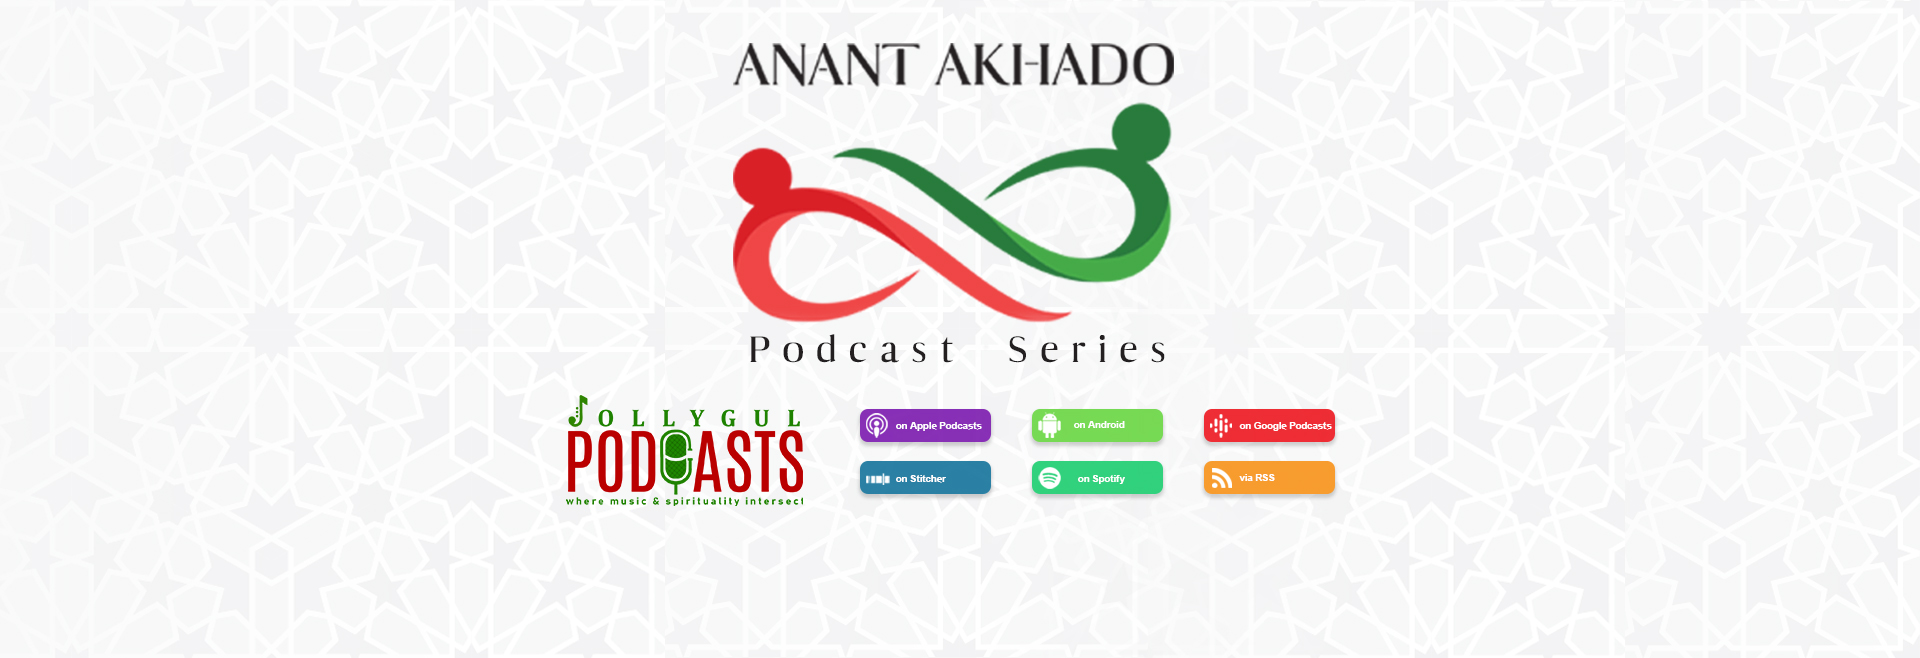 Anant Akhado Podcasts